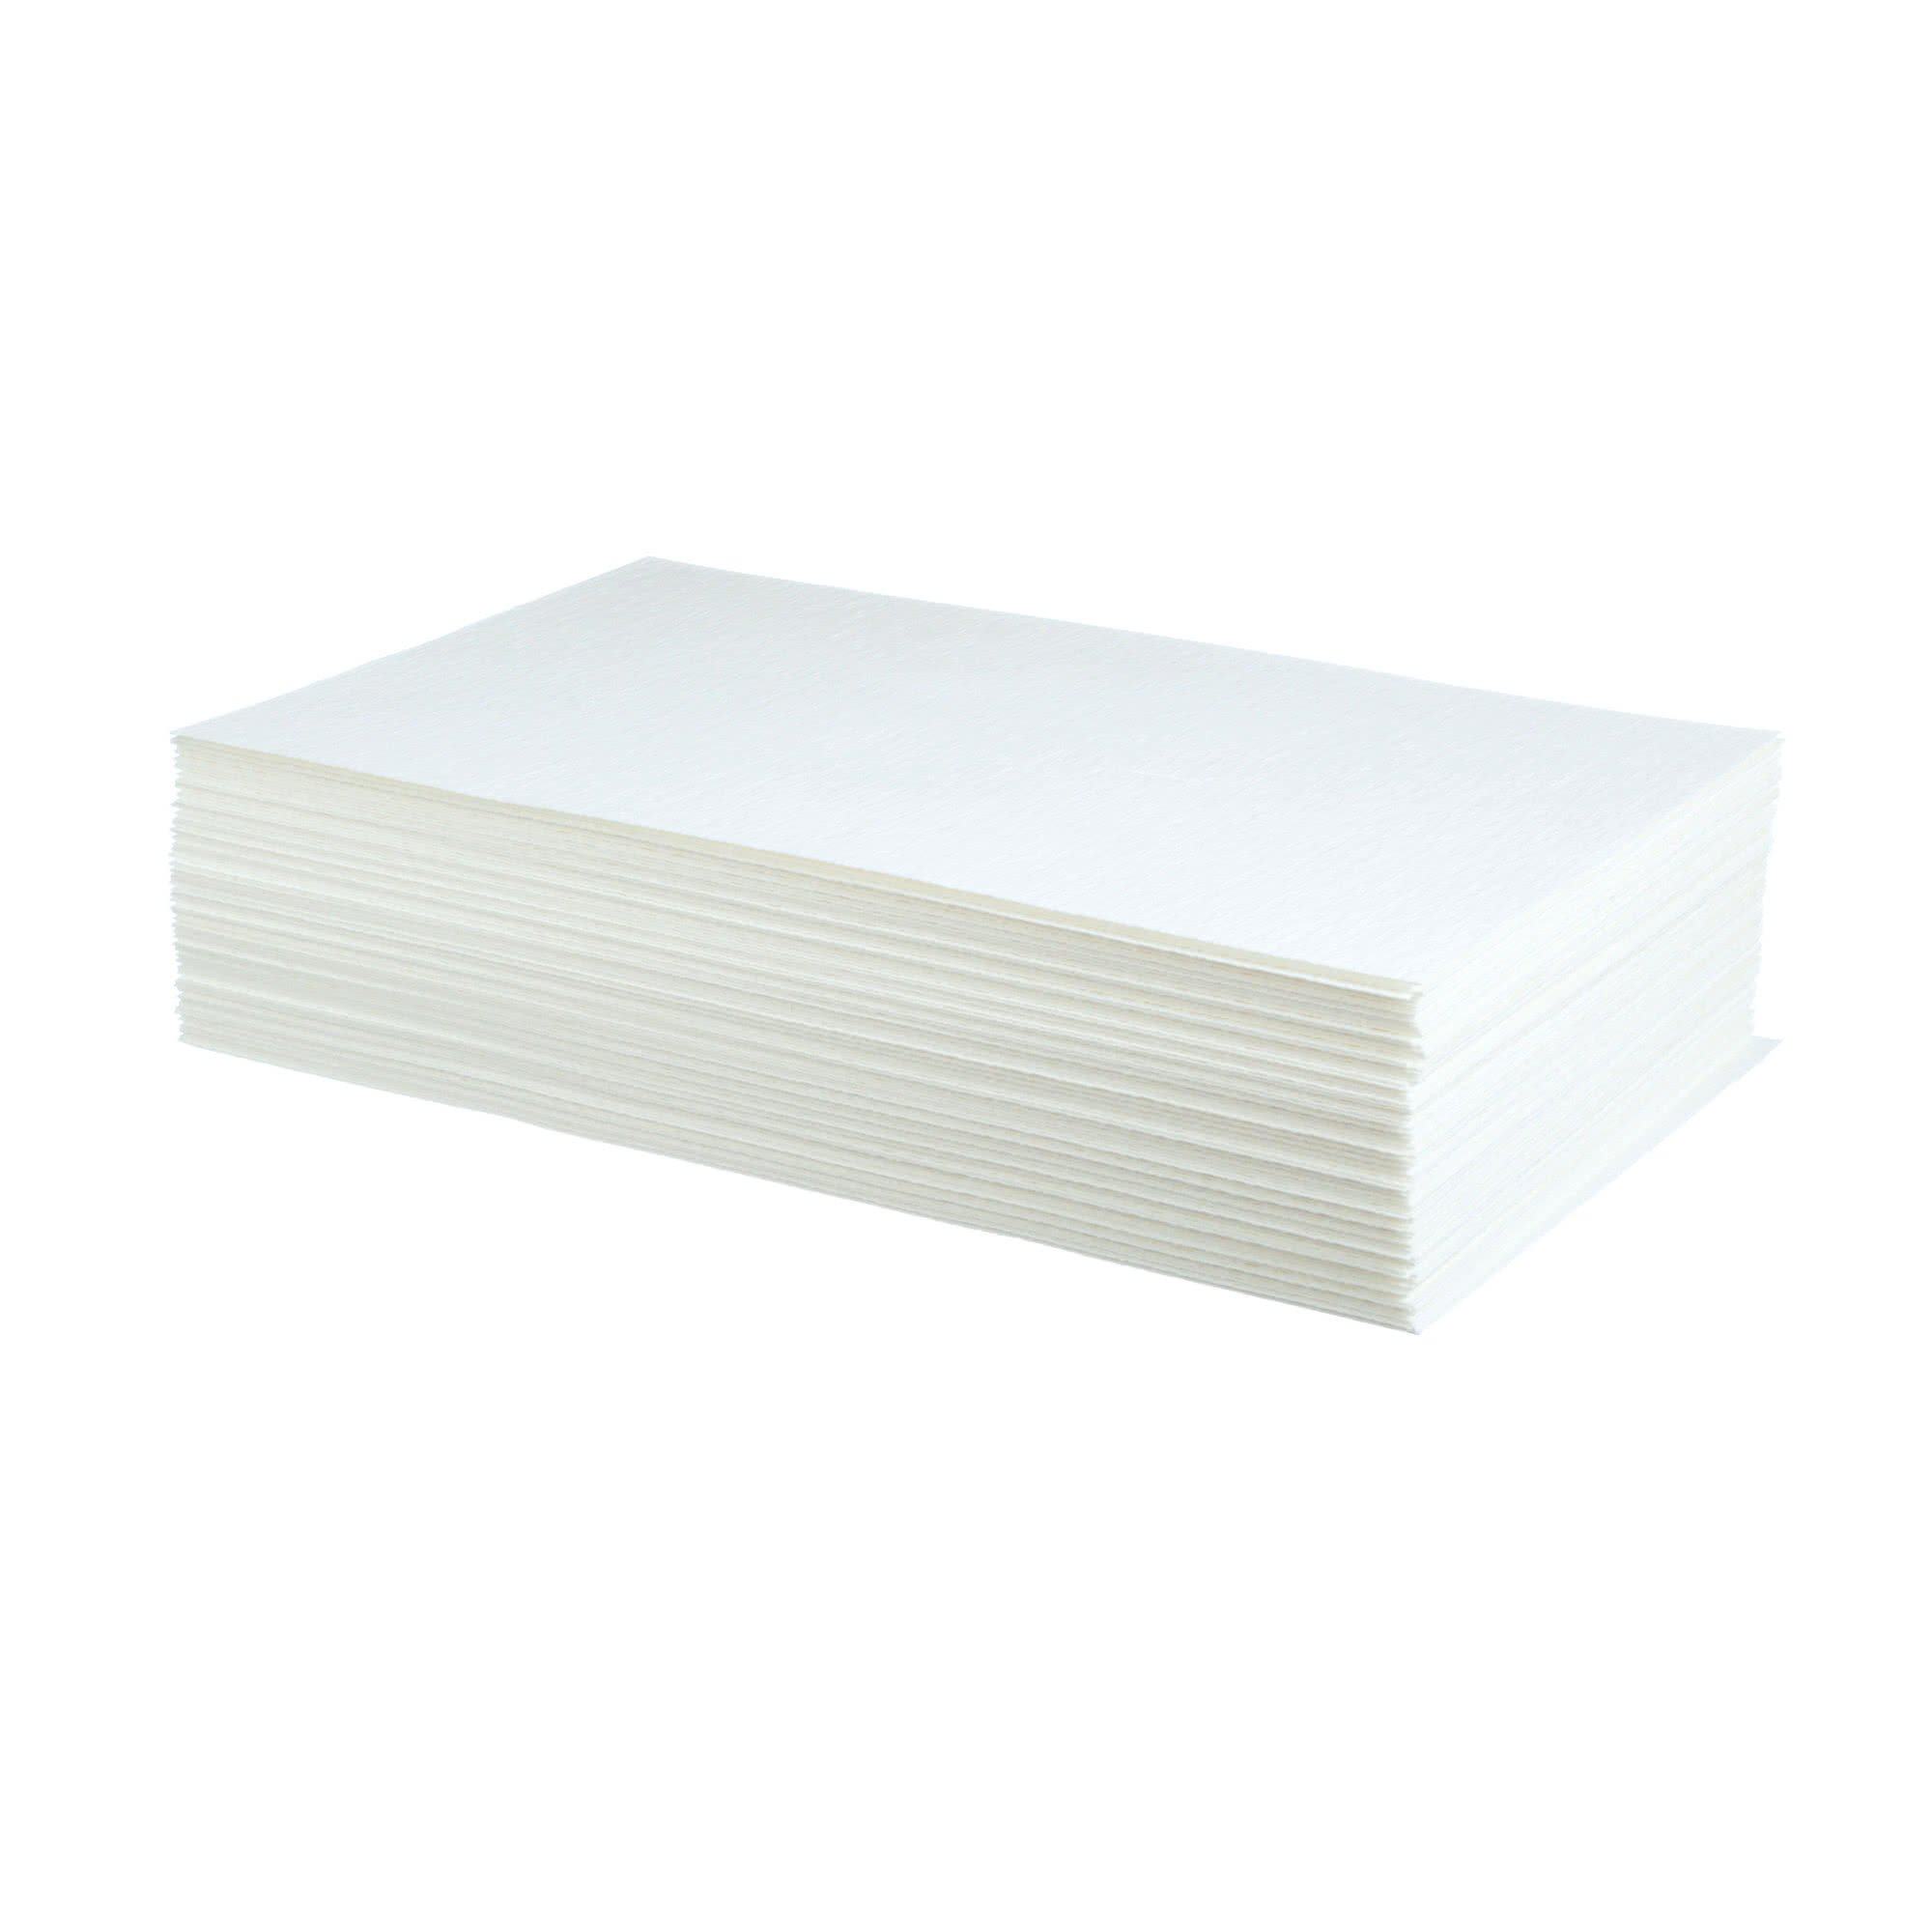 OCSParts FS1625 Fryer Filter Paper, Filter Sheet, 16.50'' x 25.50'', Replaces Frymaster 803-0170, Paper